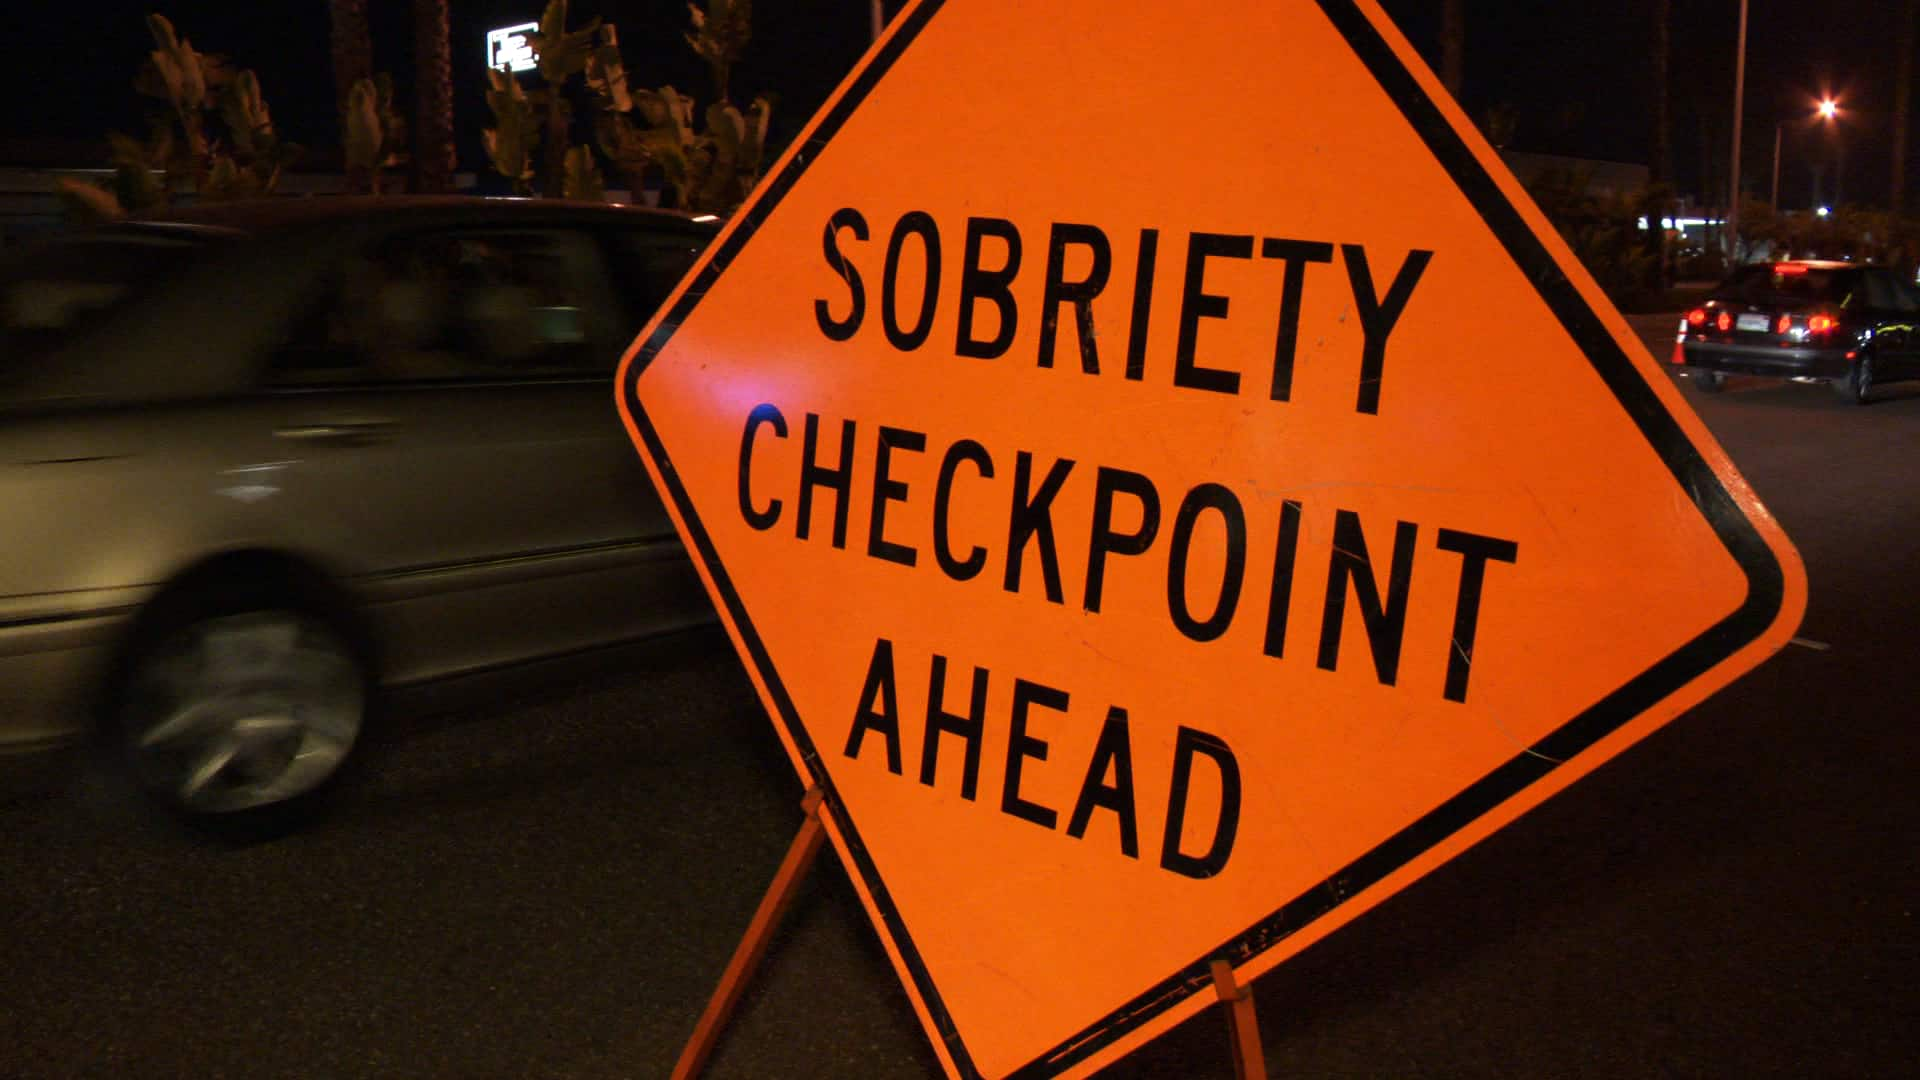 Tennessee, TN, OUI, sobriety, attorney, dui, legal, lawyer, sr22, non-owner, non-driver, without a car, checkpoint, rehab